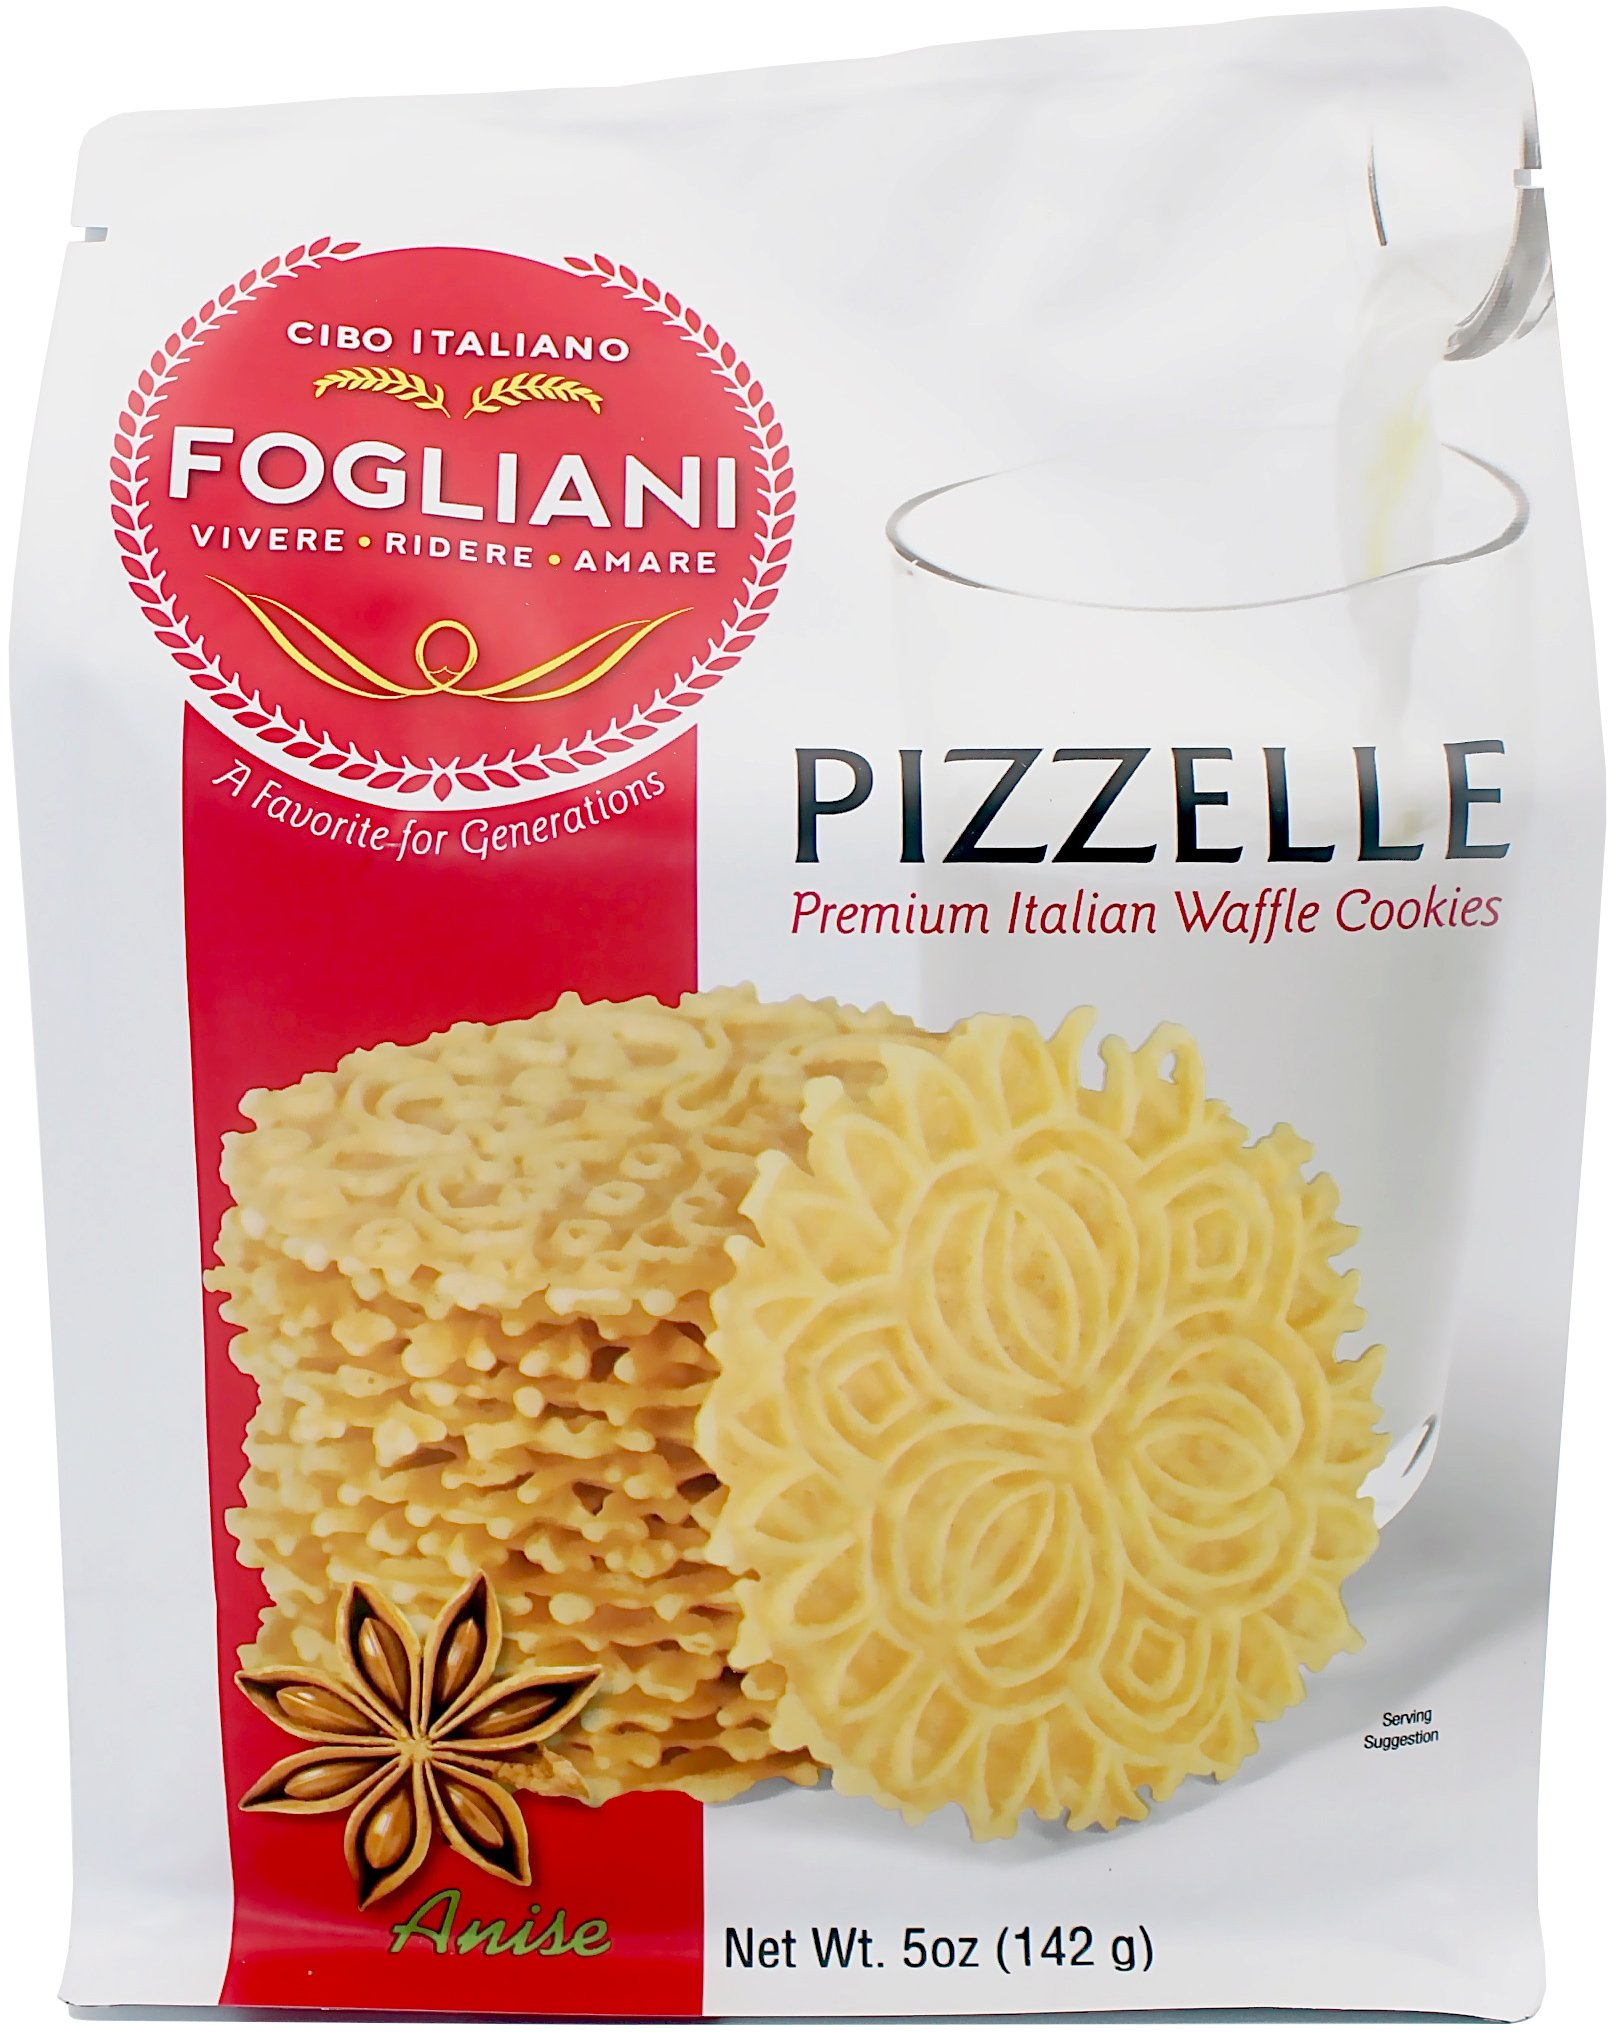 Fogliani Anise Pizzelle Waffle Cookies (Pack of 1) by Fogliani